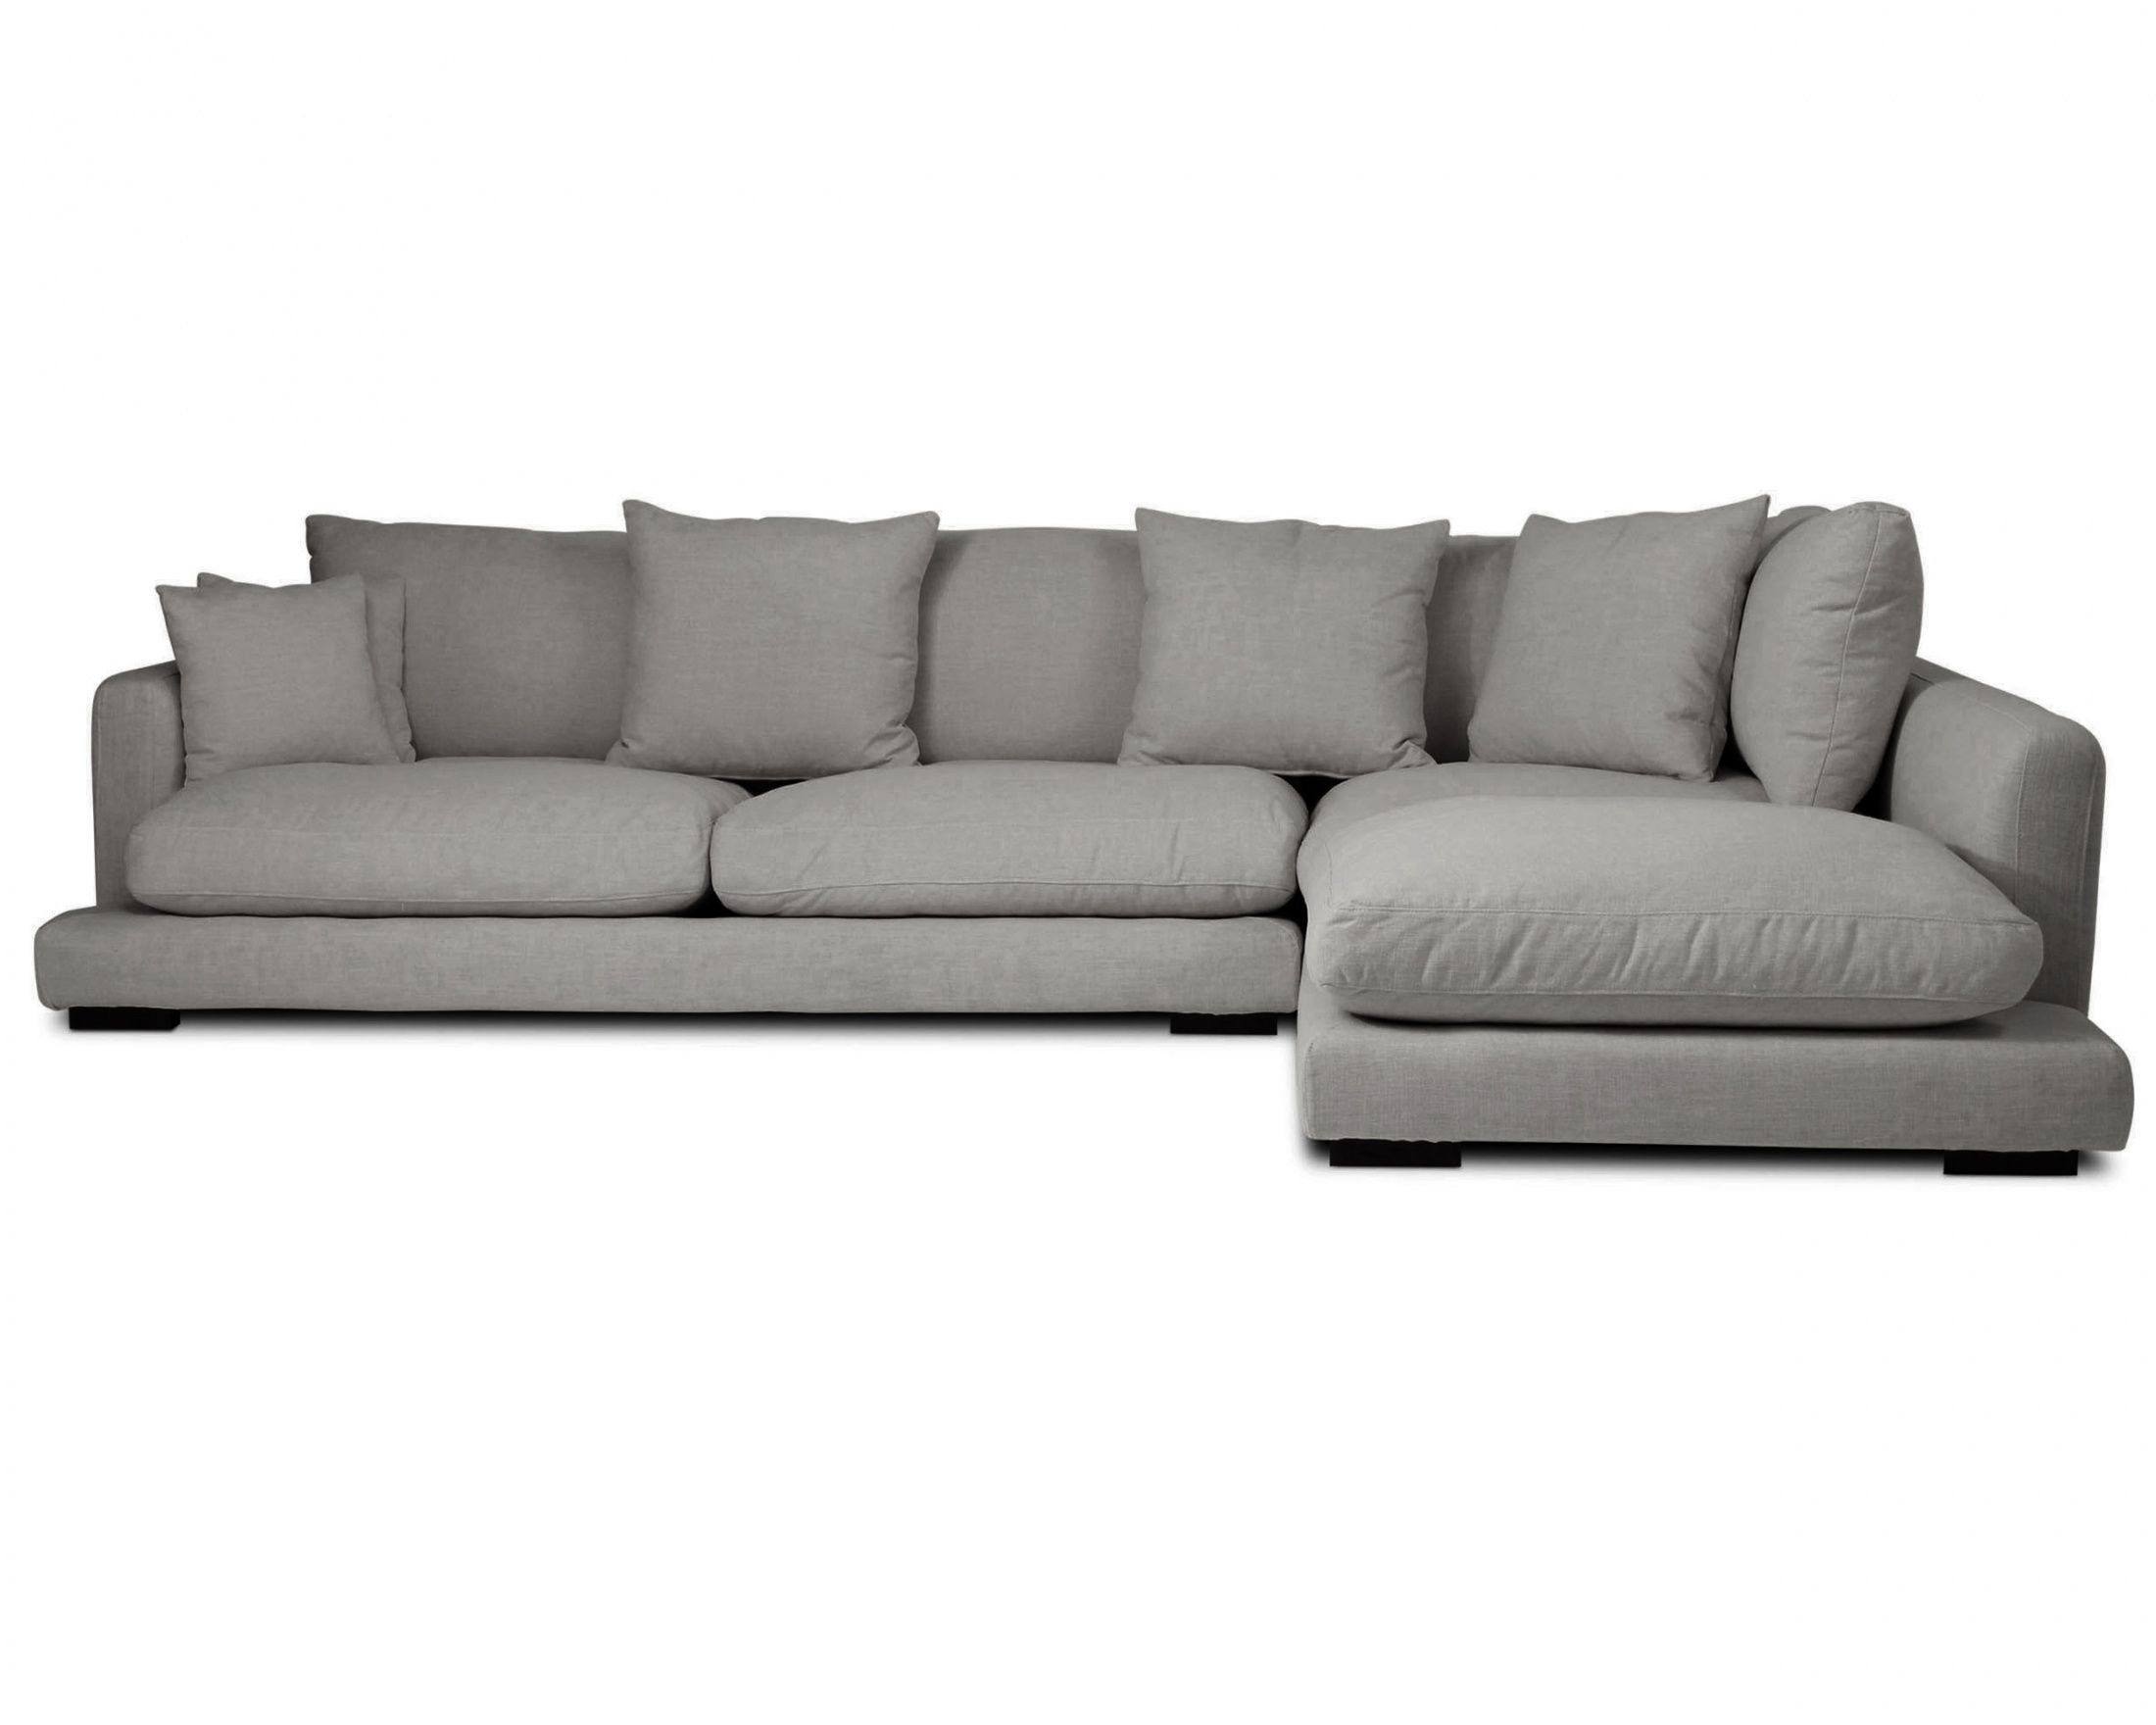 Long Beach - Corner Sofa